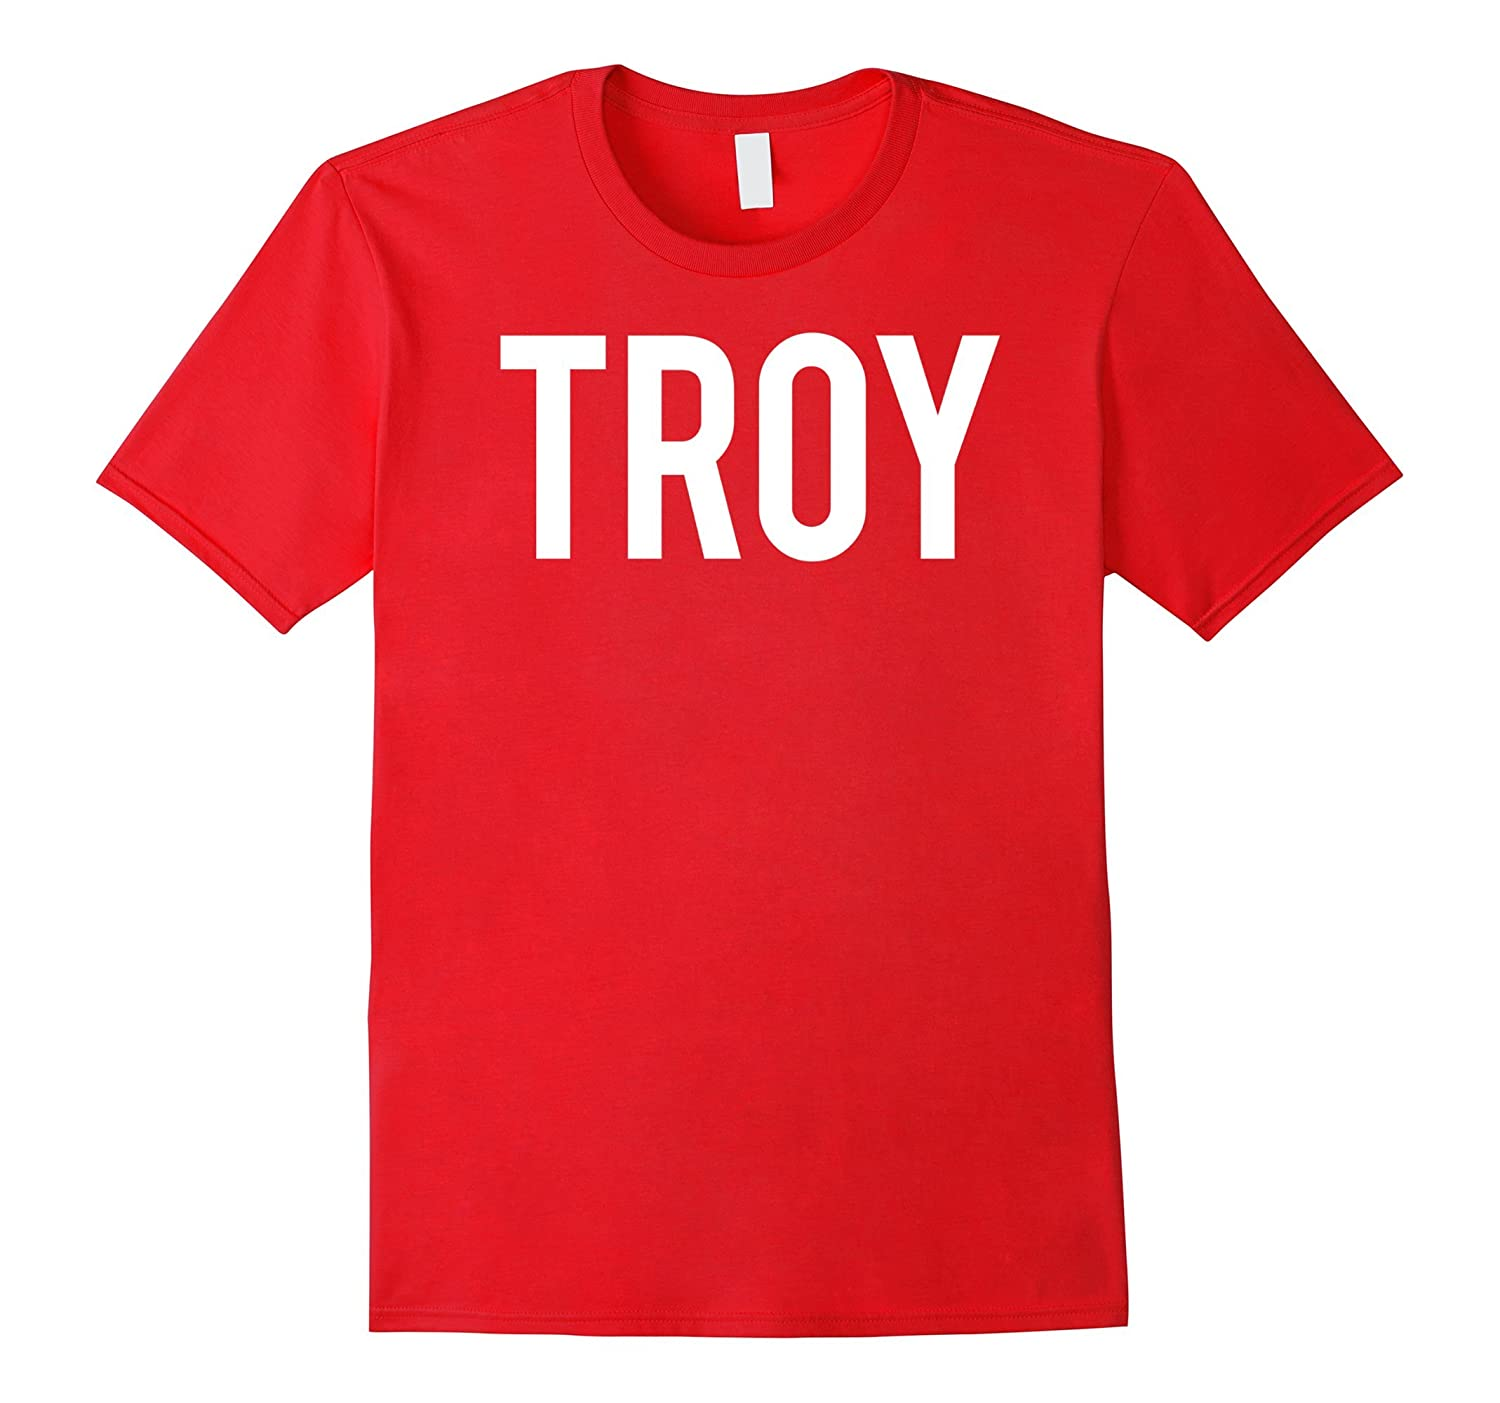 Troy T Shirt Cool Michigan MI city fan funny cheap gift tee-Teevkd